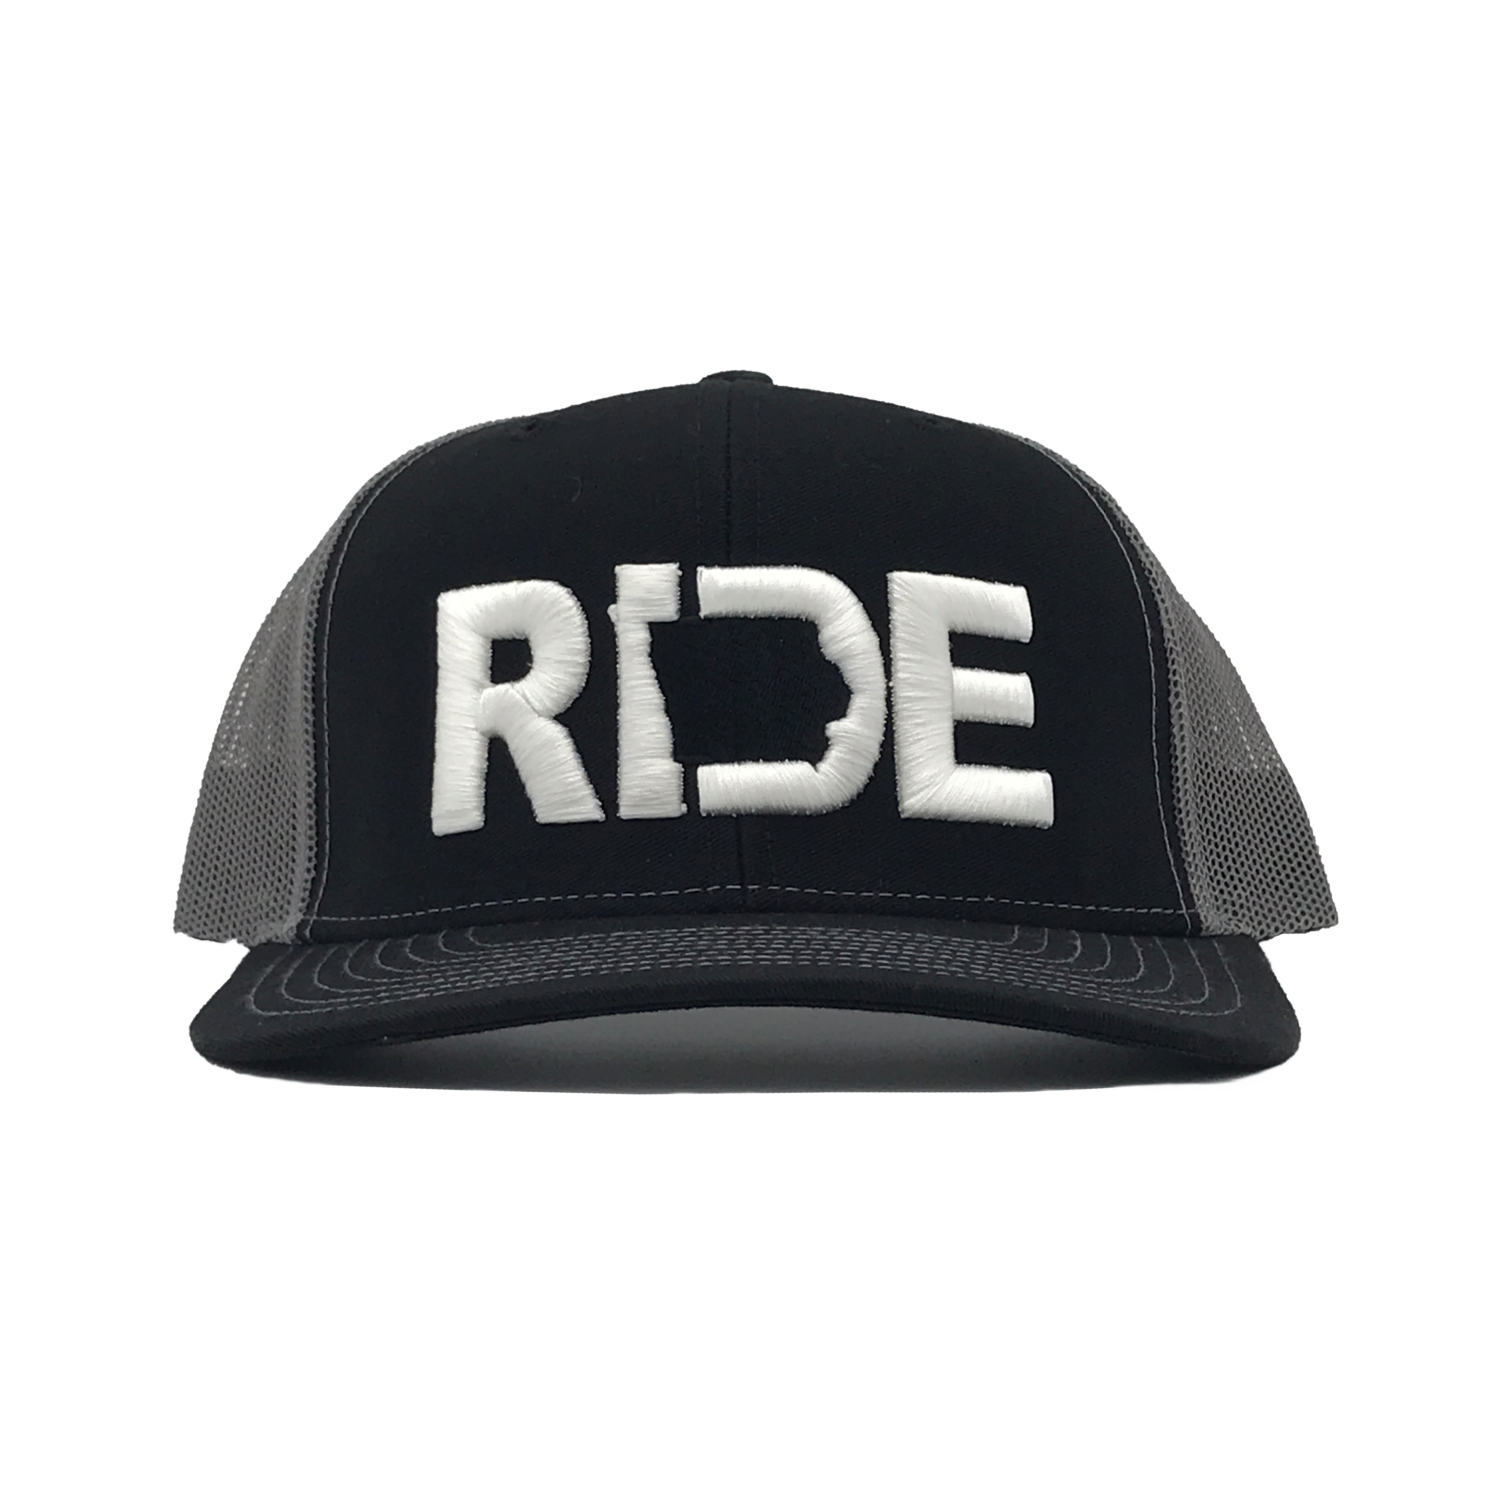 Ride Iowa Classic Embroidered Snapback Snapback Trucker Hat Black/White